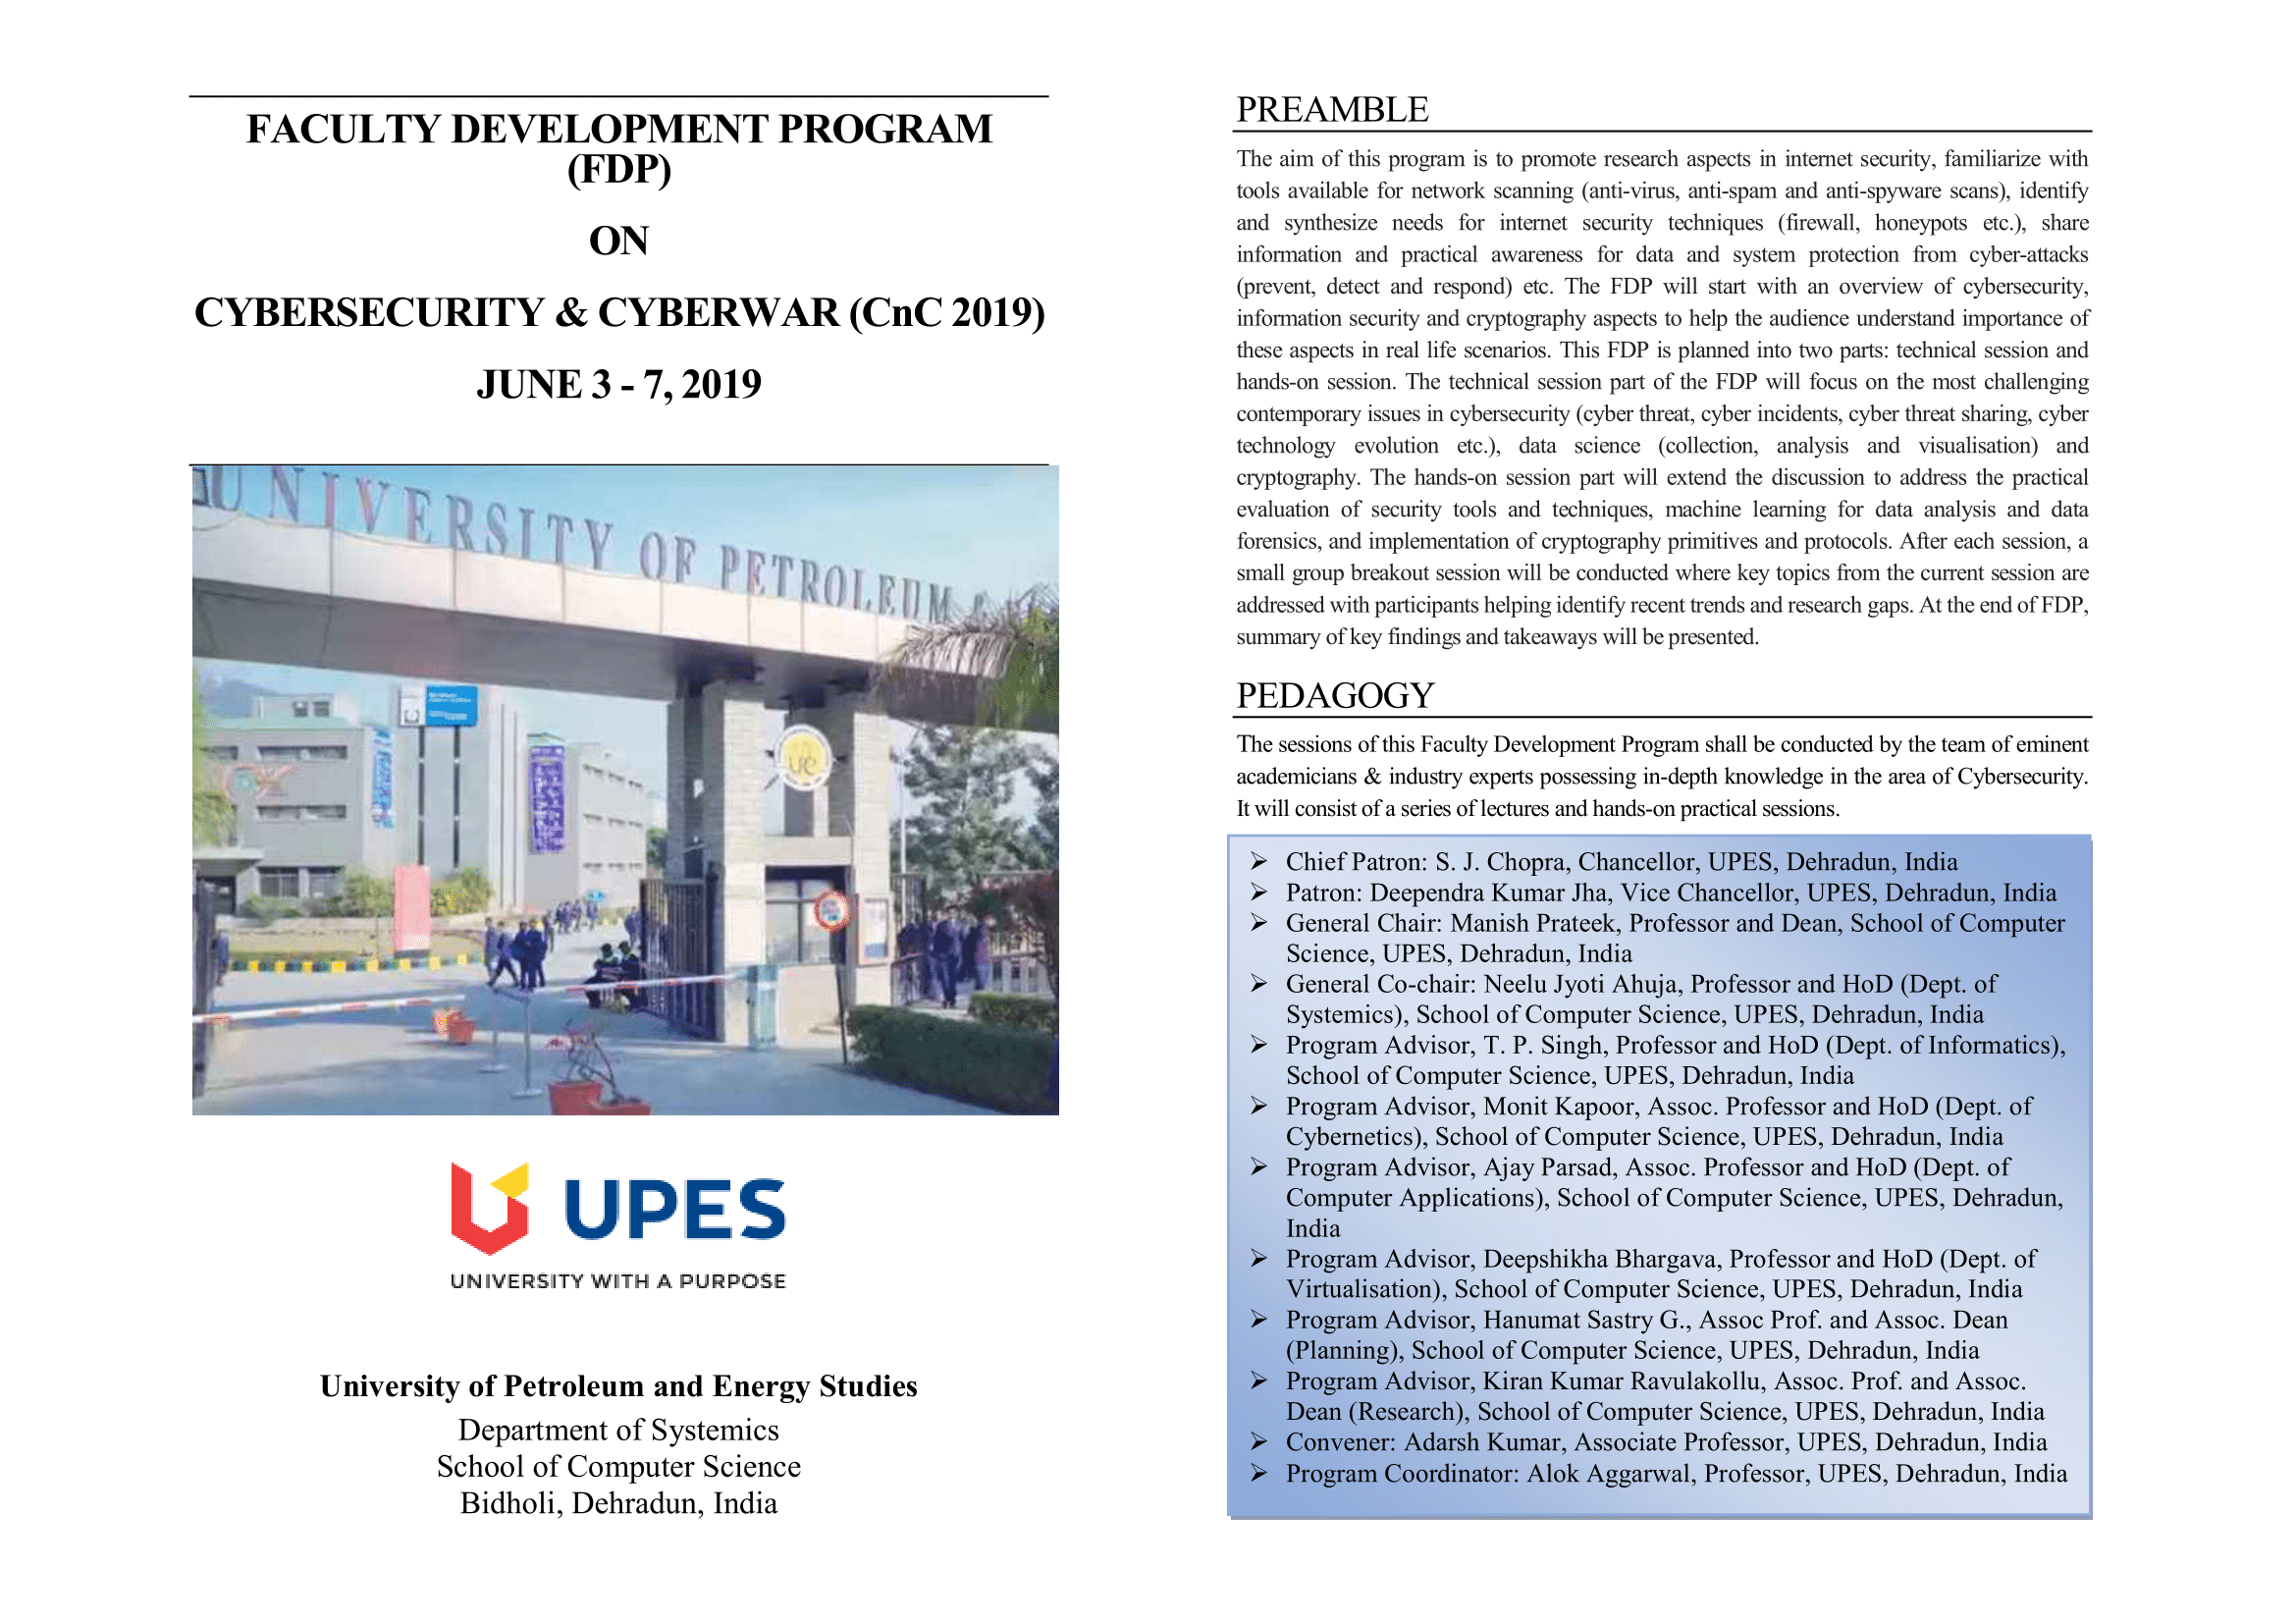 Faculty Development Program on Cyber Security and Cyber War 2019